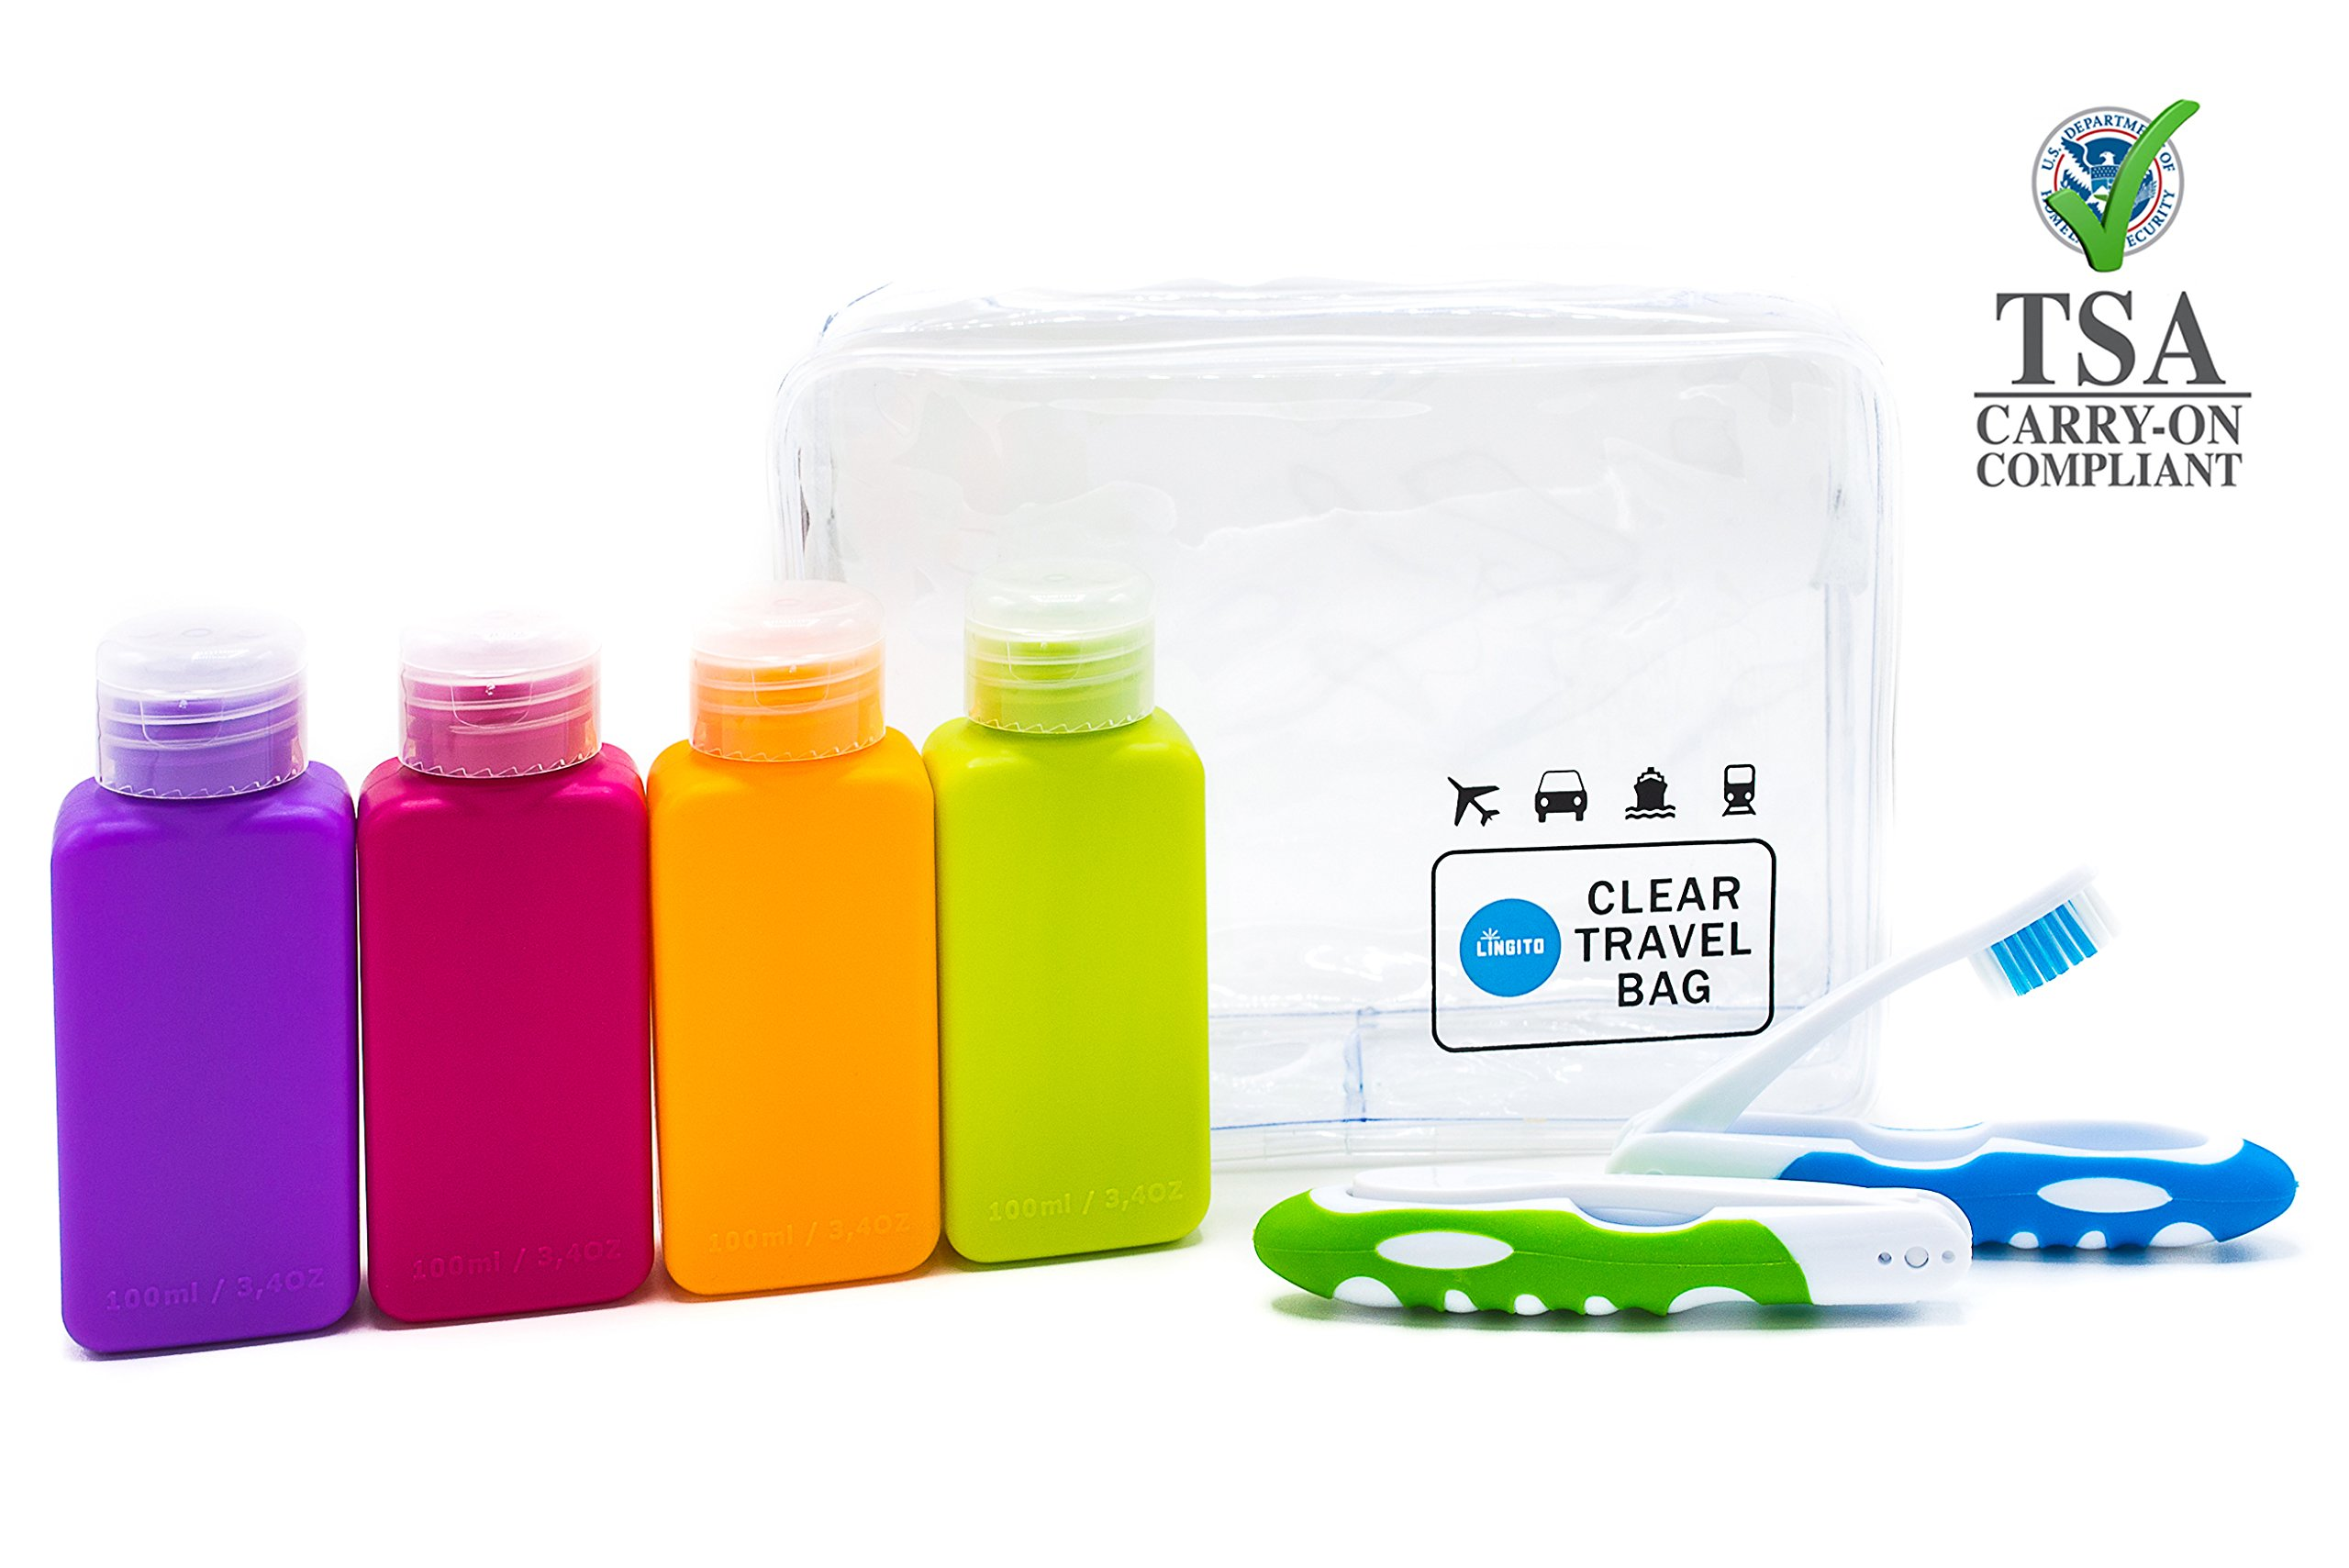 28ec2cb8f068 Details about Lingito Travel Bottle Set, Leak Proof Travel Accessories, TSA  Carry-On Approved,